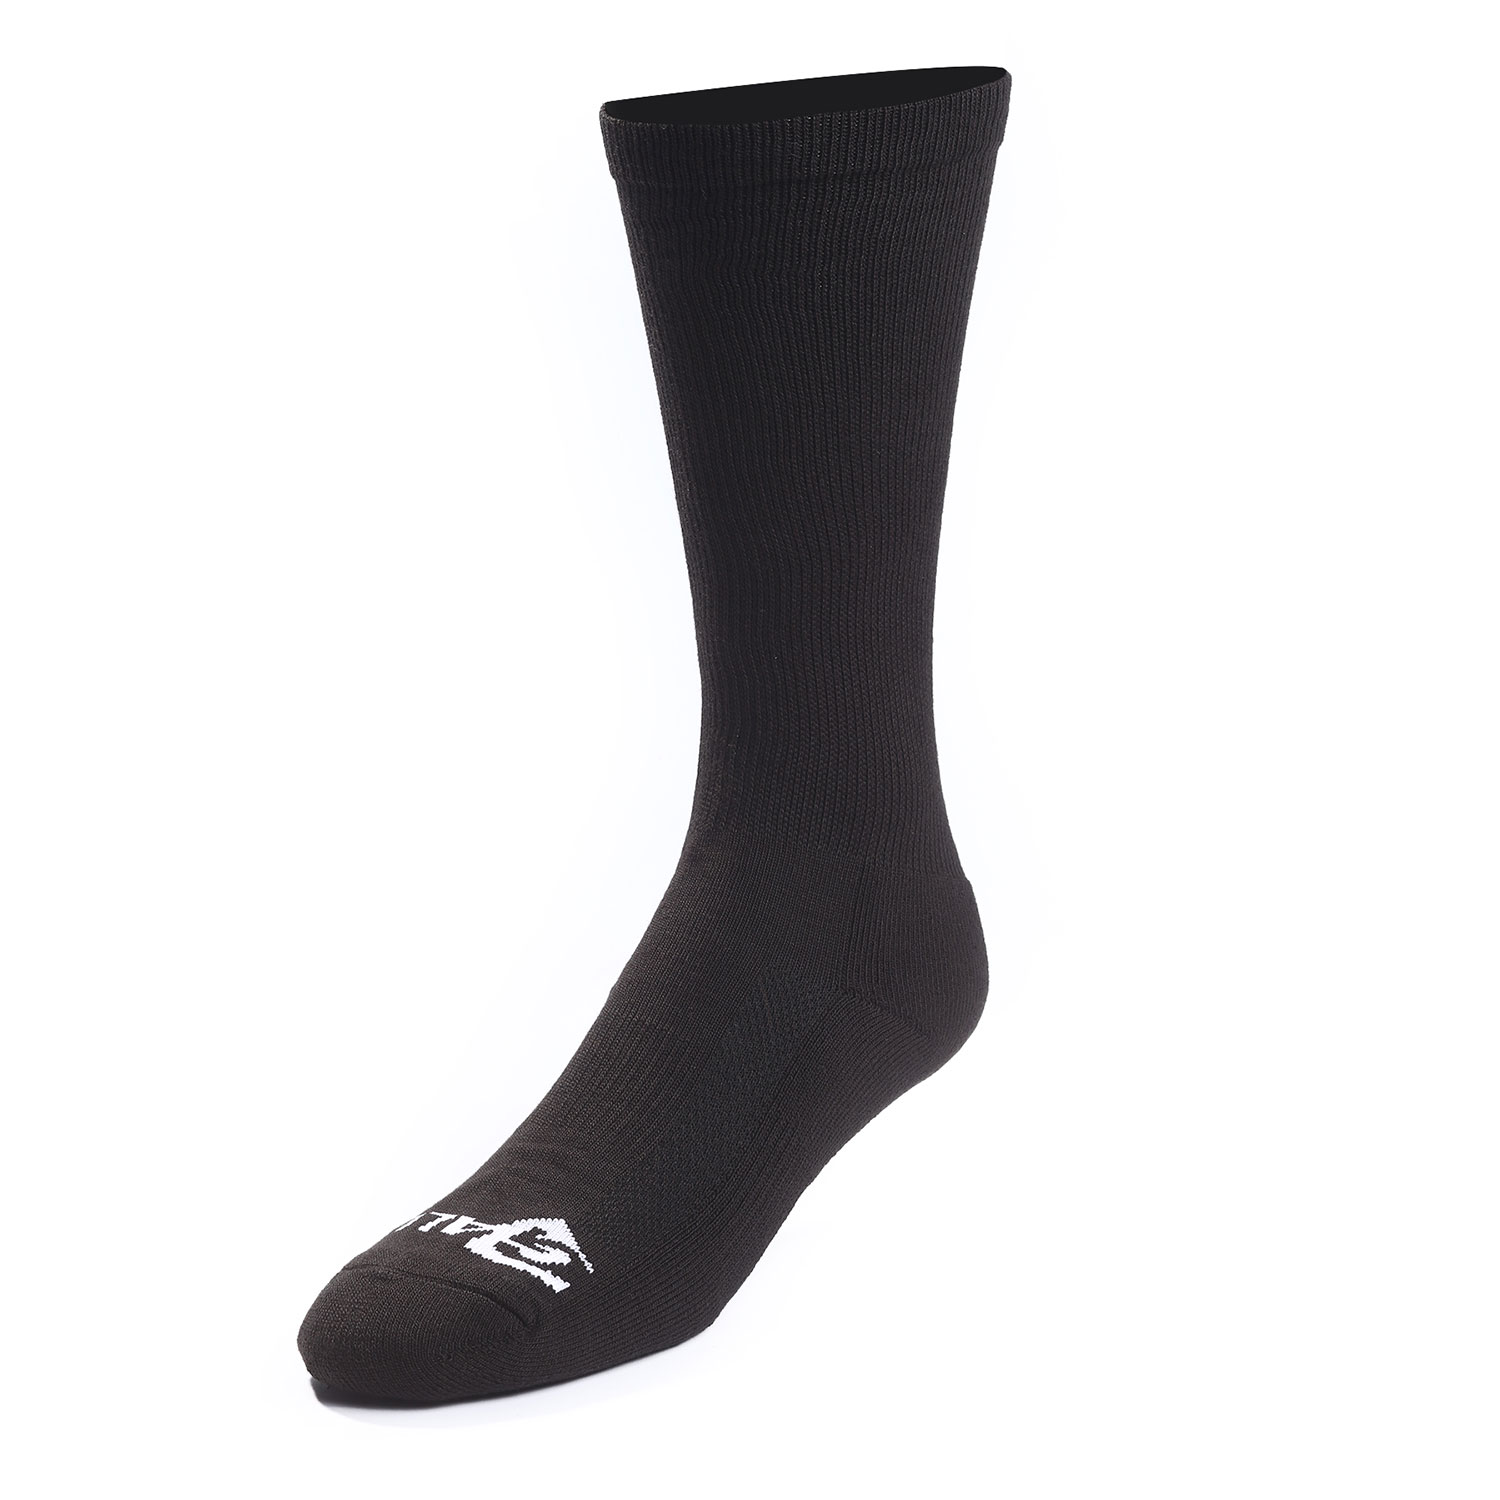 Galls Lightweight Cushioned Boot Socks